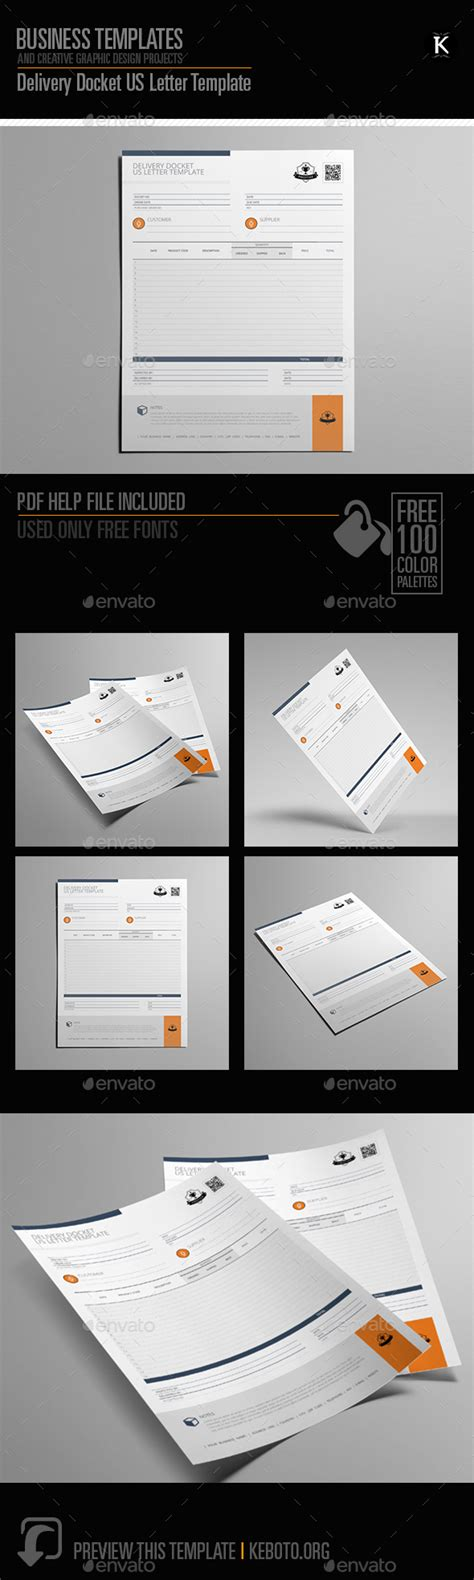 Memo Template Graphicriver special delivery vector 187 tinkytyler org stock photos